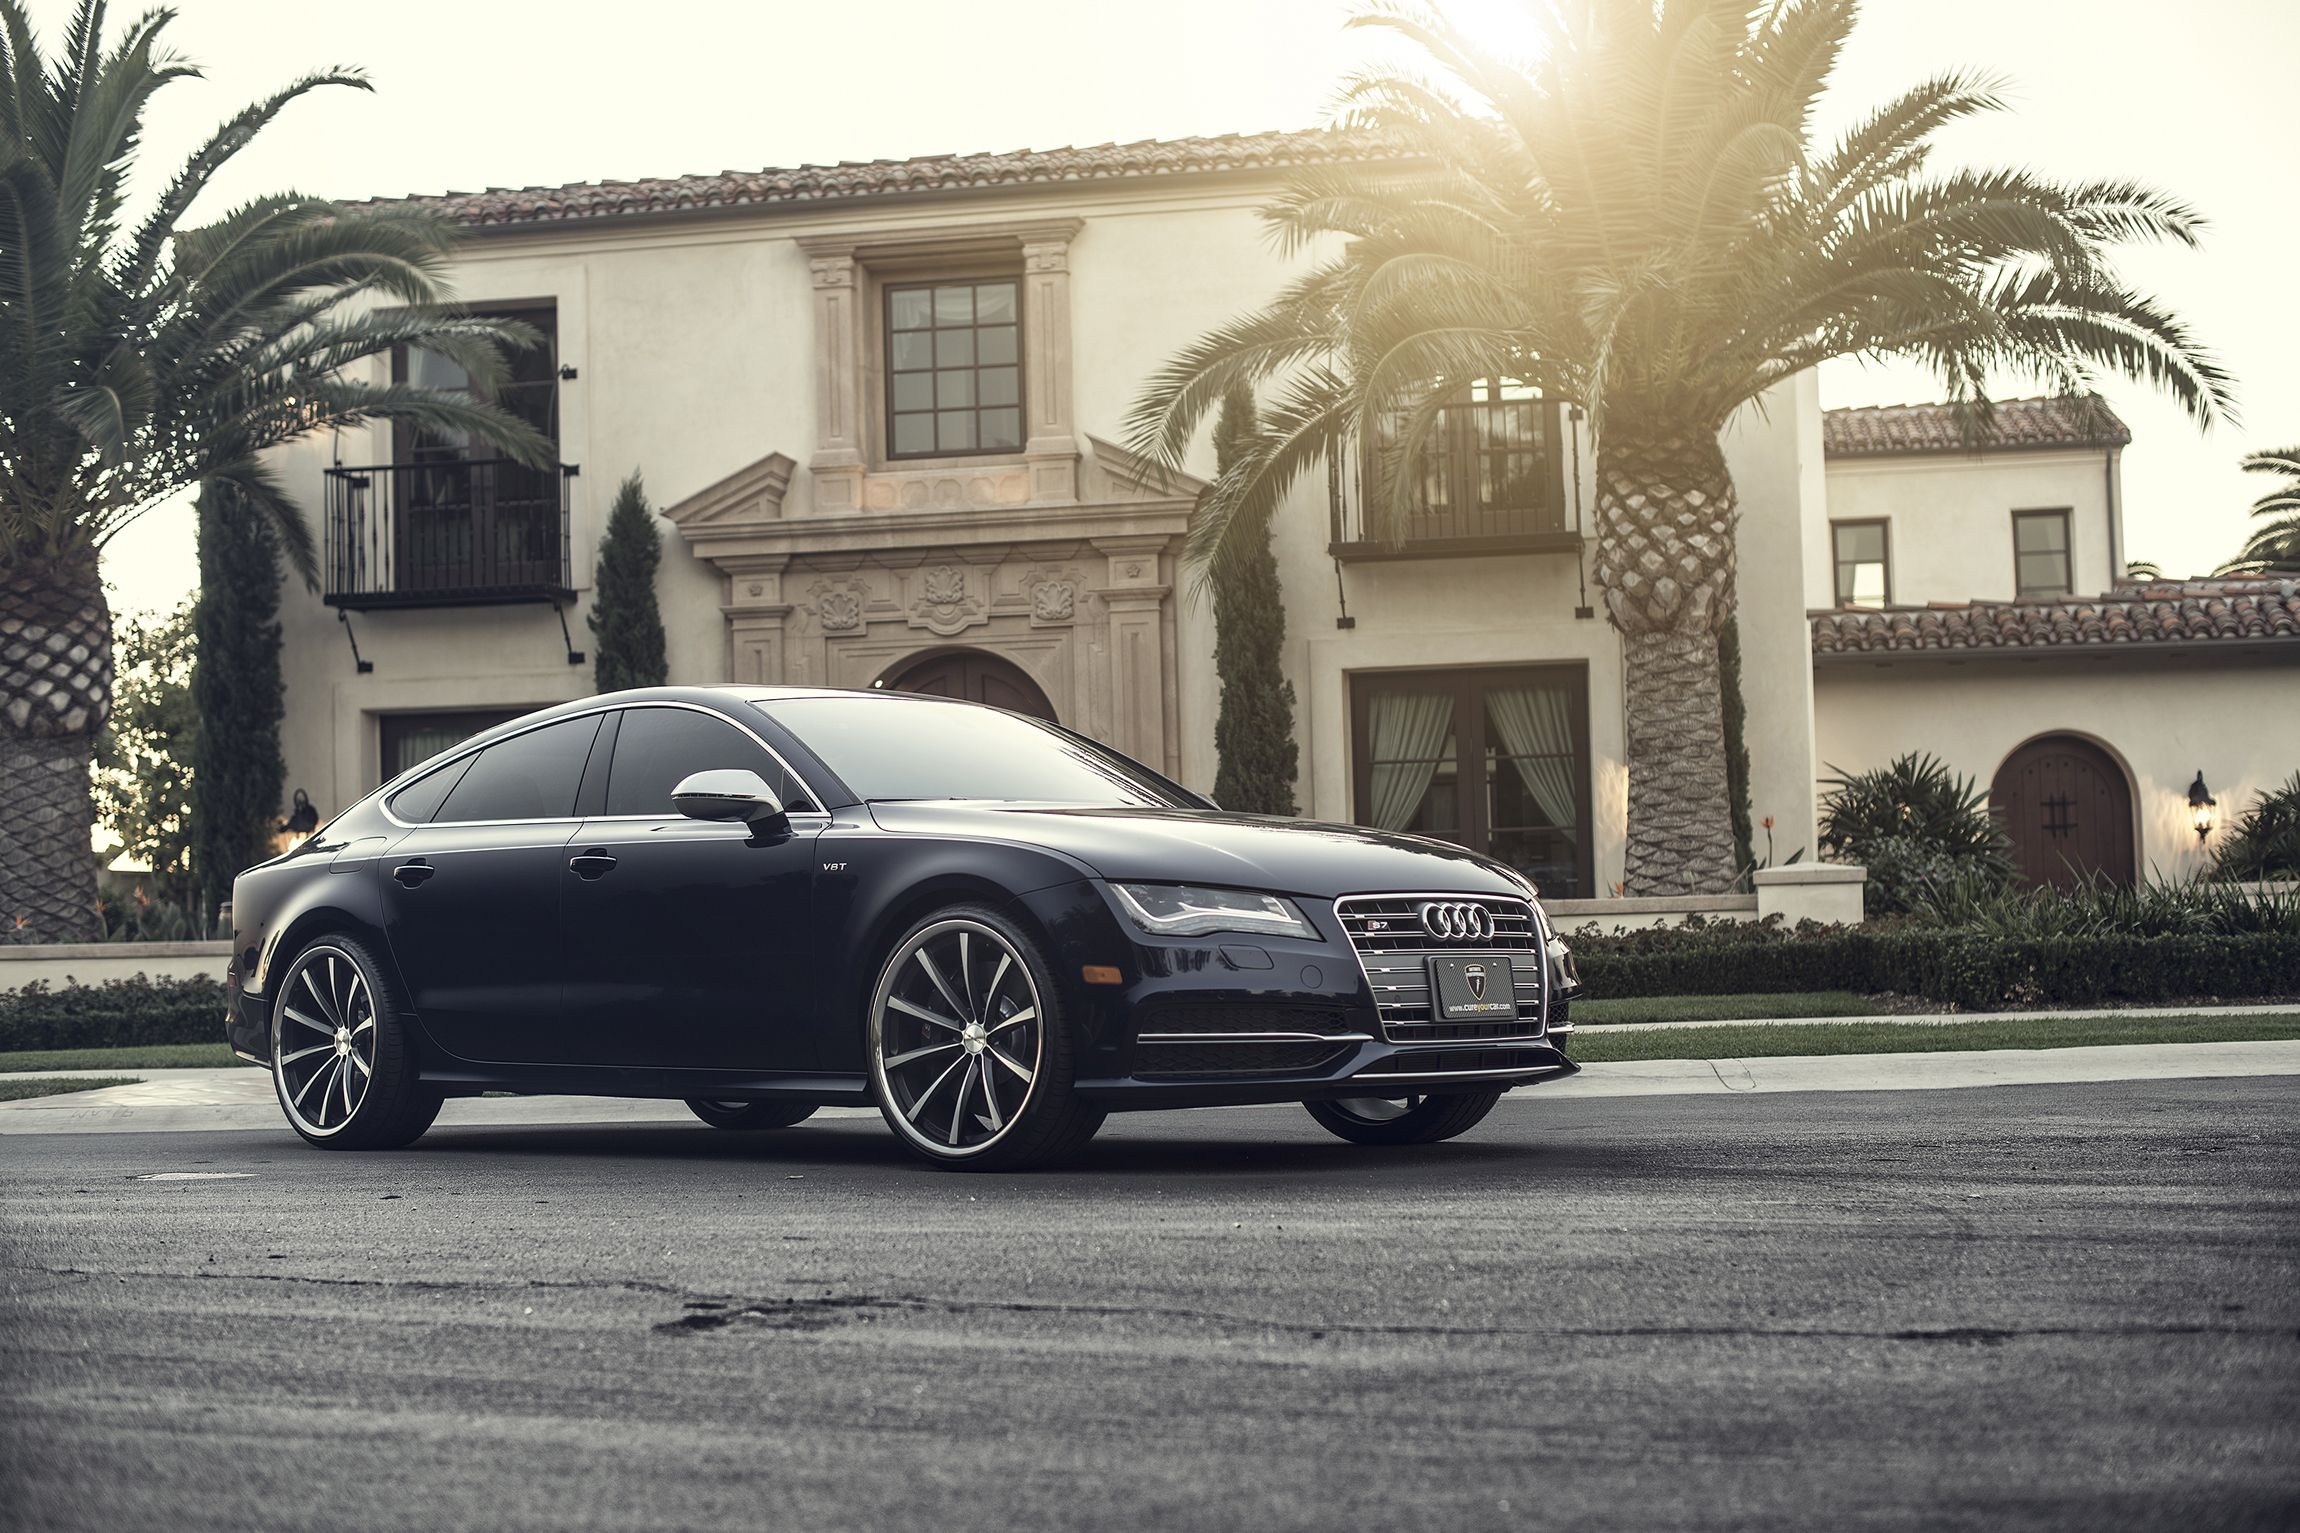 Wonderful Malcolmu0027s House And Car. Audi S7 V8